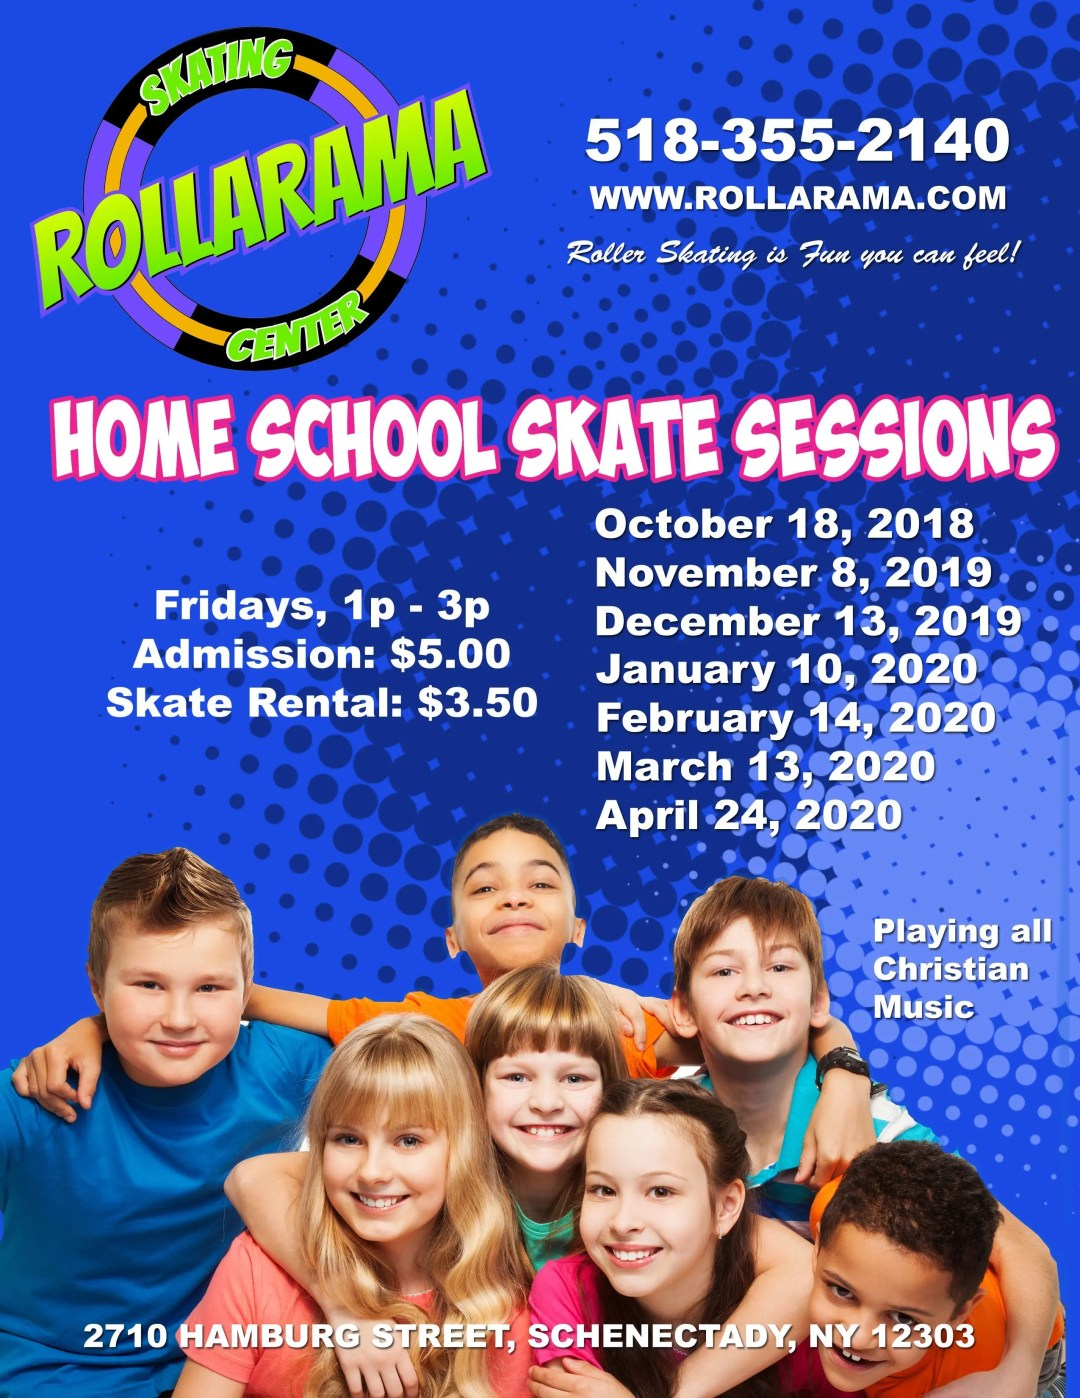 Home School Skate sessions at Rollarama on Fridays 1-3p once a month.